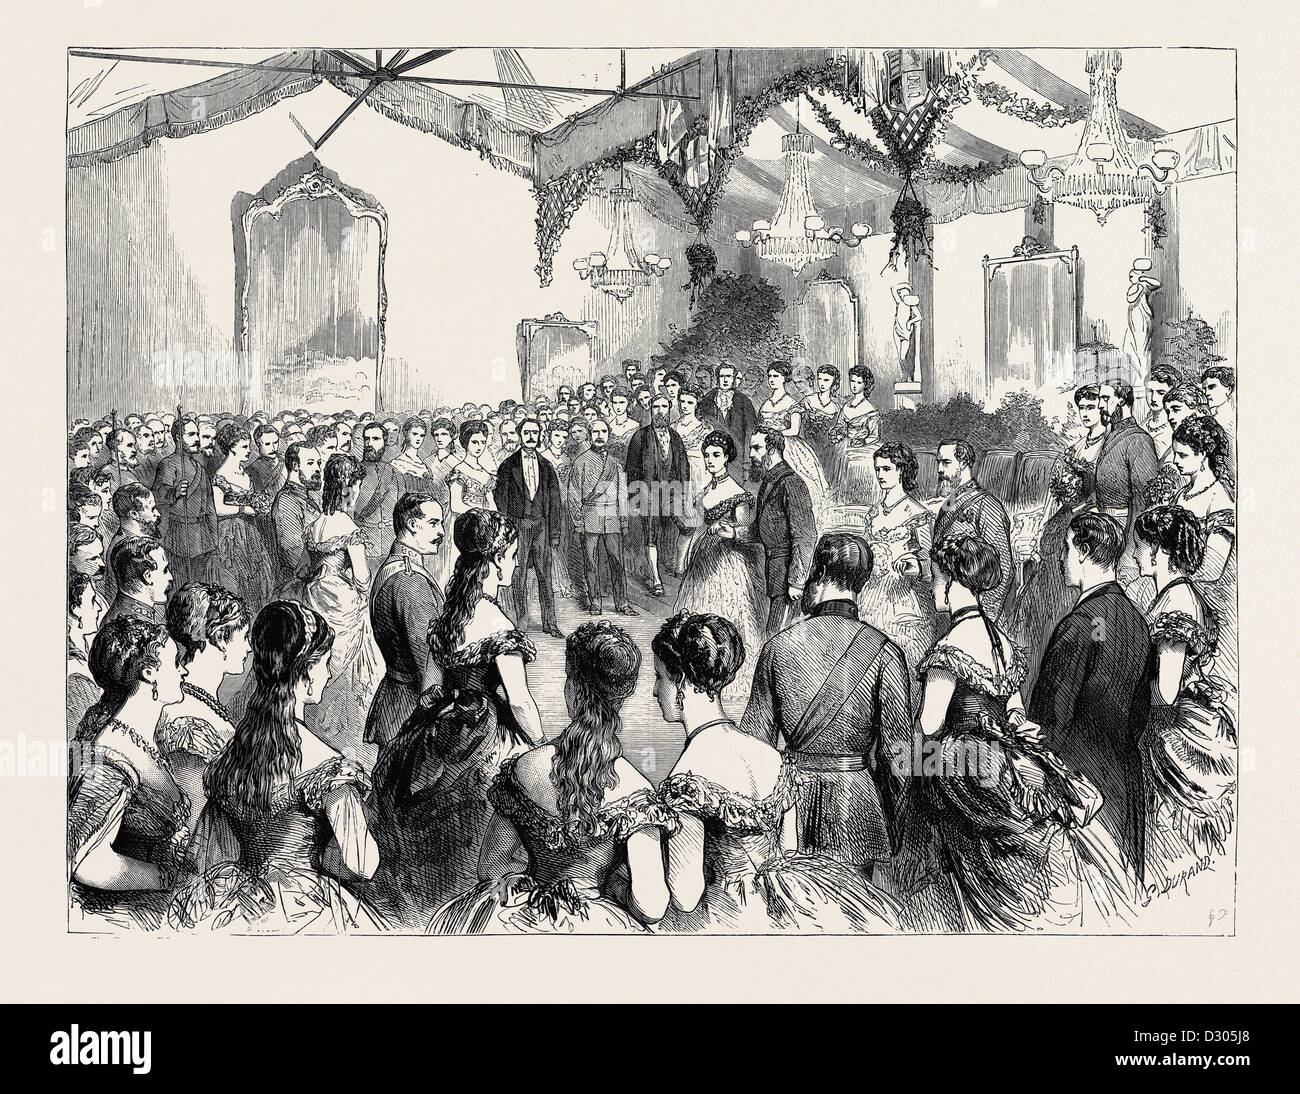 THE HONOURABLE ARTILLERY COMPANY'S BALL, 1870 - Stock Image